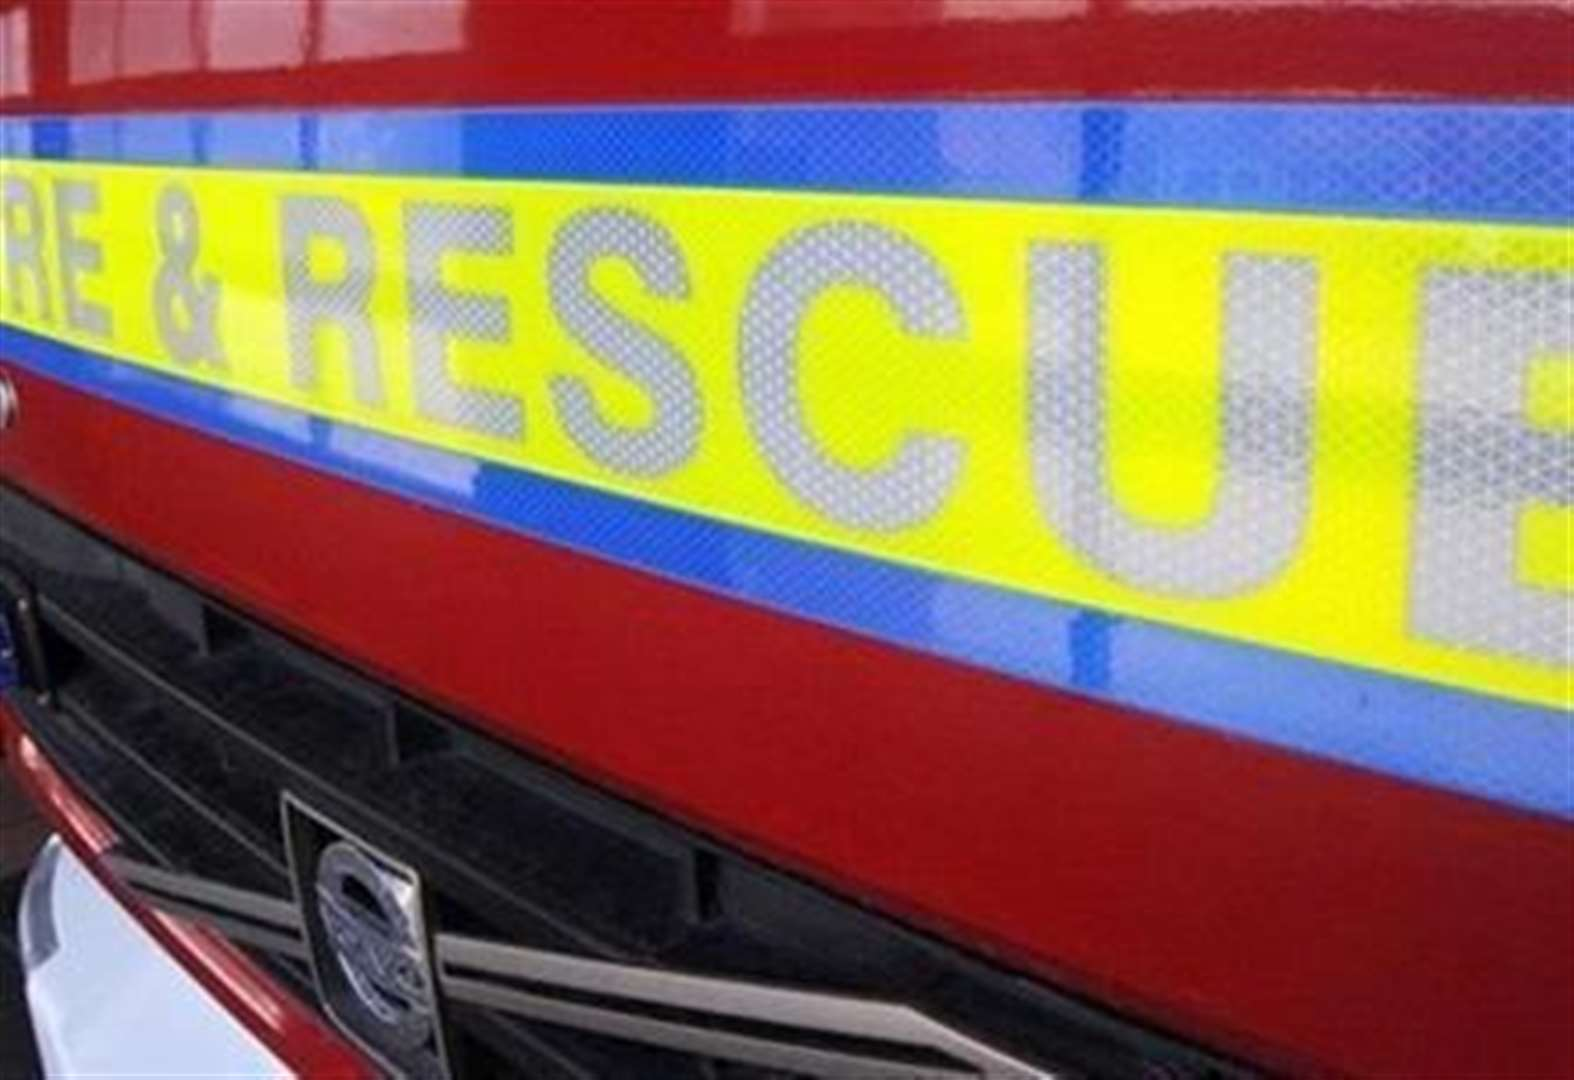 Grantham firefighters tackle vehicle fire in Grantham